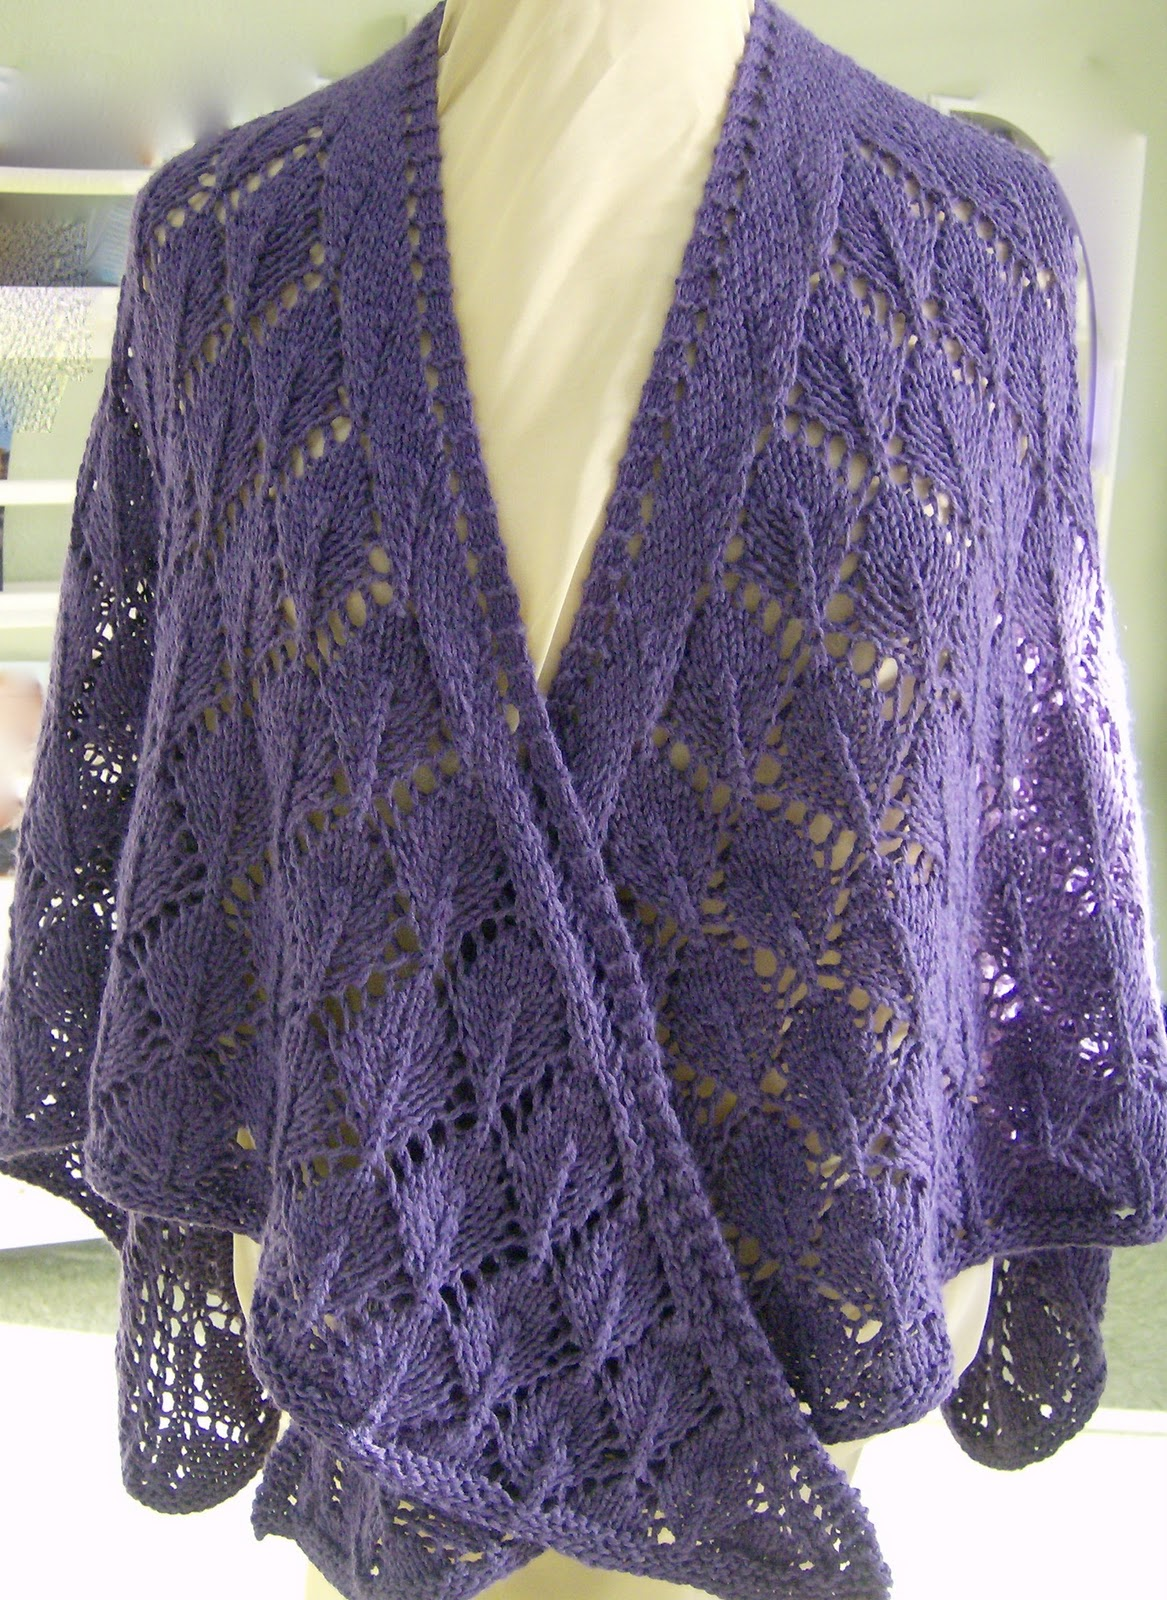 Knitted Shawl Patterns Free : SunFunLiving Knits: Oak Leaves Shawl Pattern (FREE)